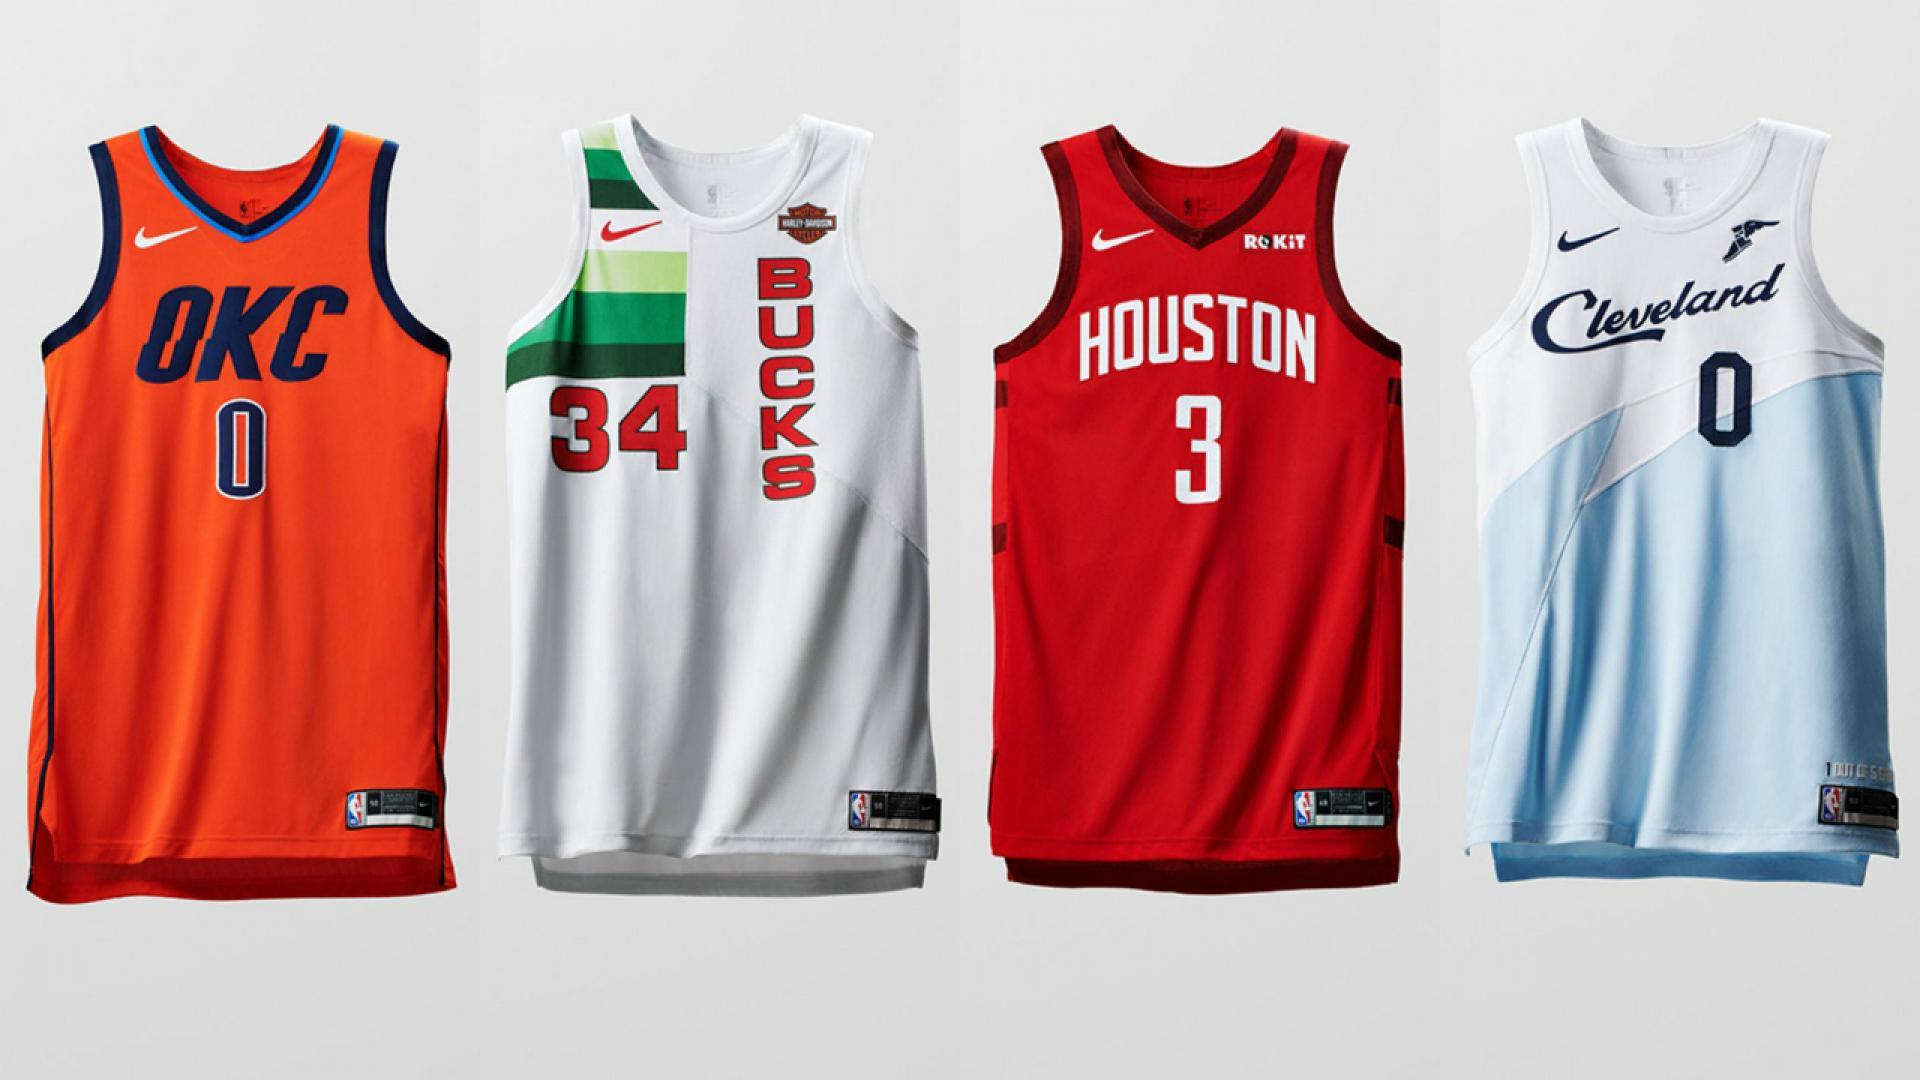 d1f751d4a22 Earned Edition uniforms for Oklahoma City, Milwaukee, Houston and Cleveland.